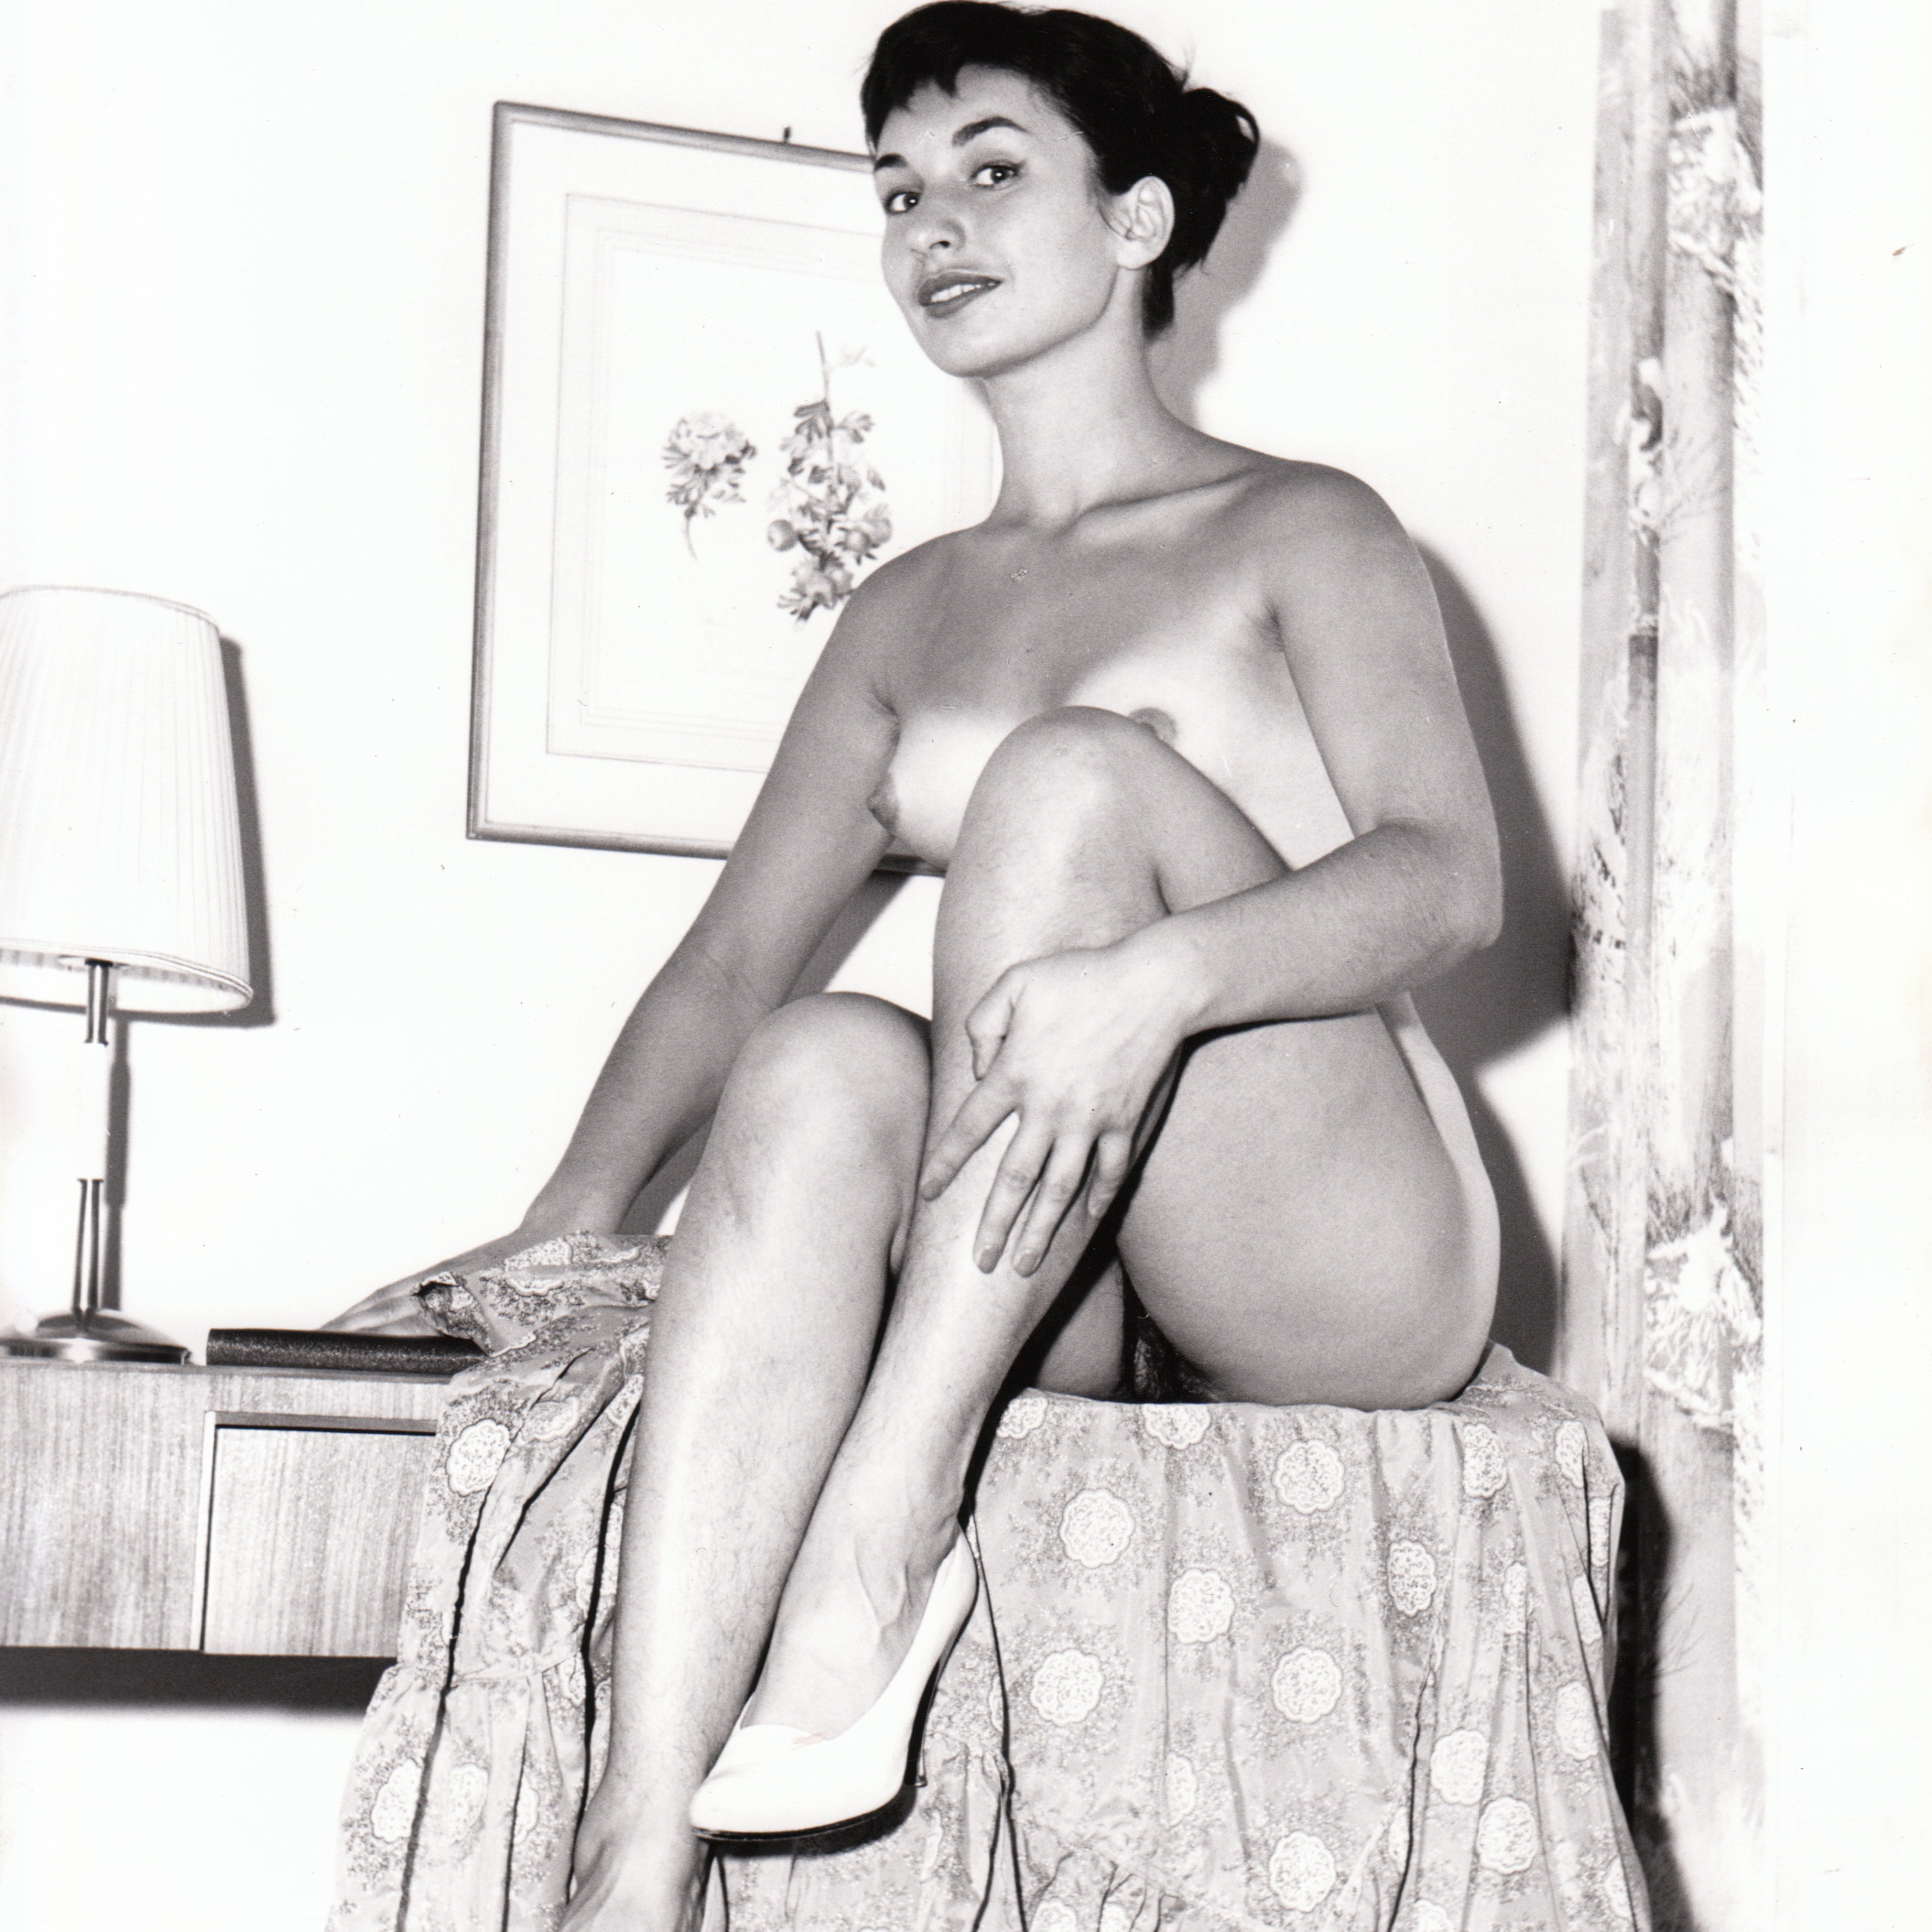 Desnudos B&W 1950-th